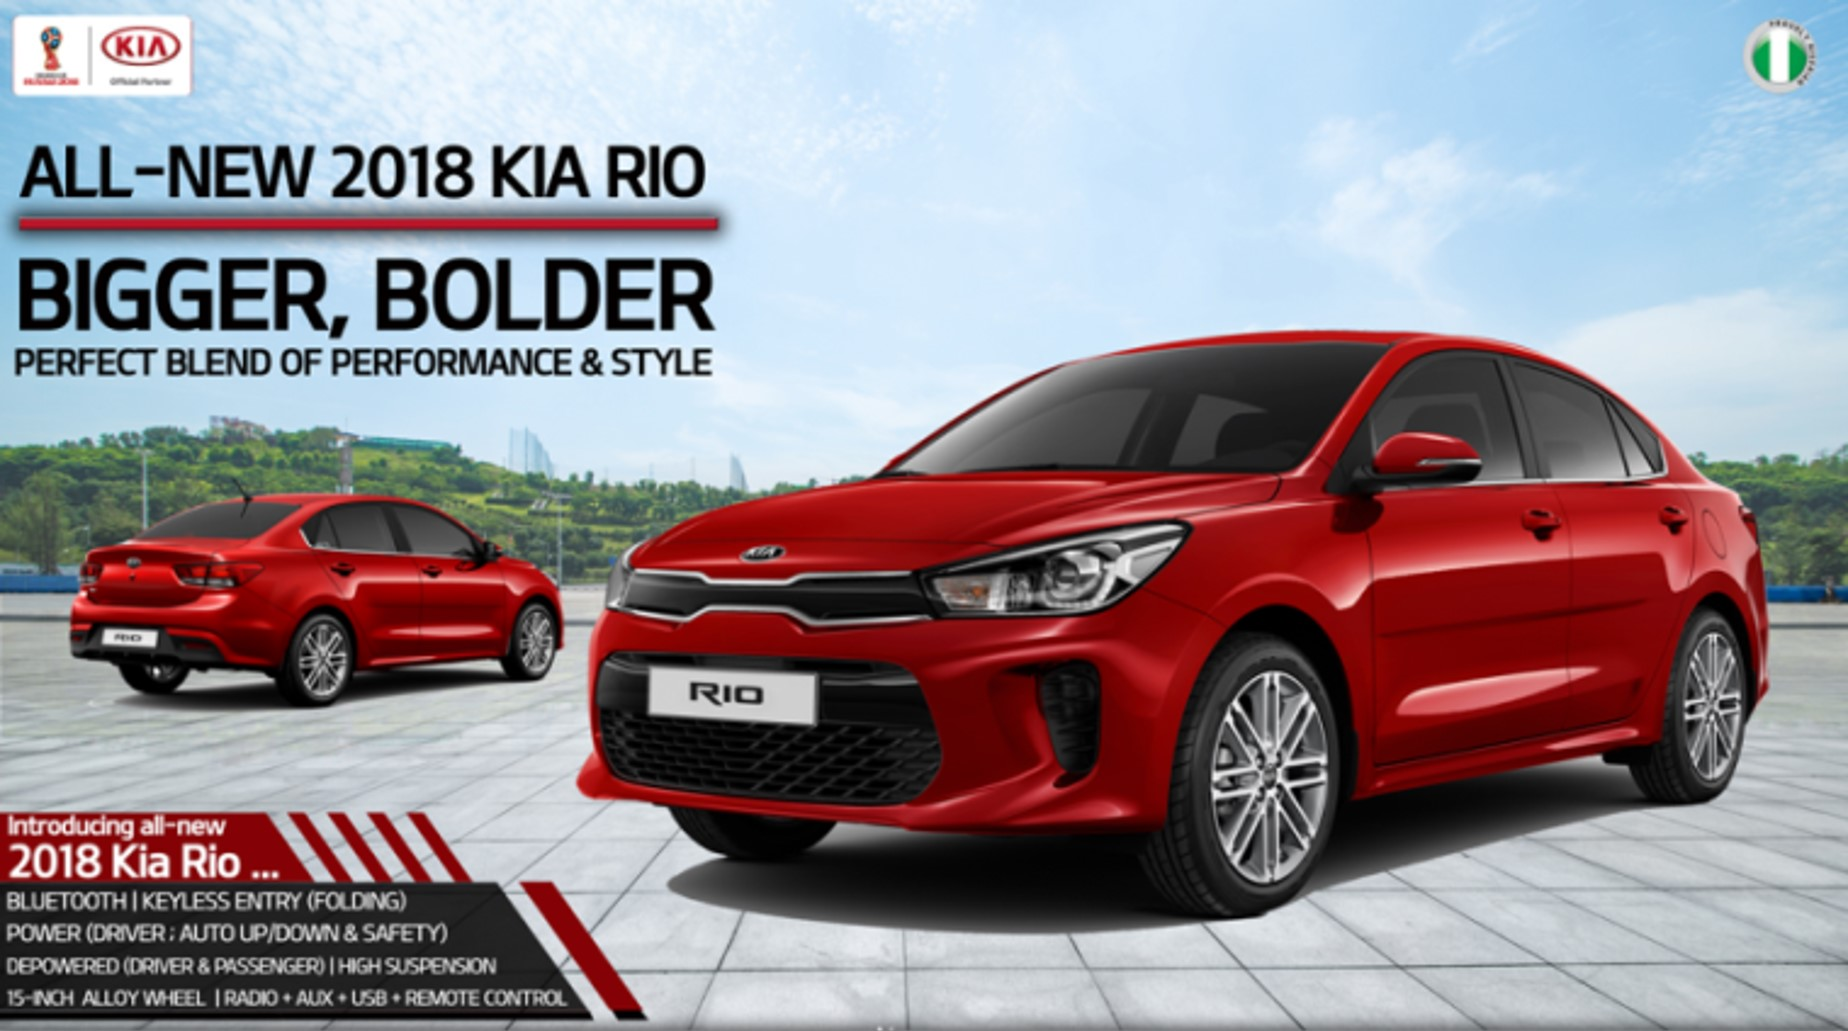 Kia Nigeria Introduces 2018 Kia Rio. Bigger, Bolder, Perfect Blend of Performance & Style (Pictures & Specs) - Brand Spur